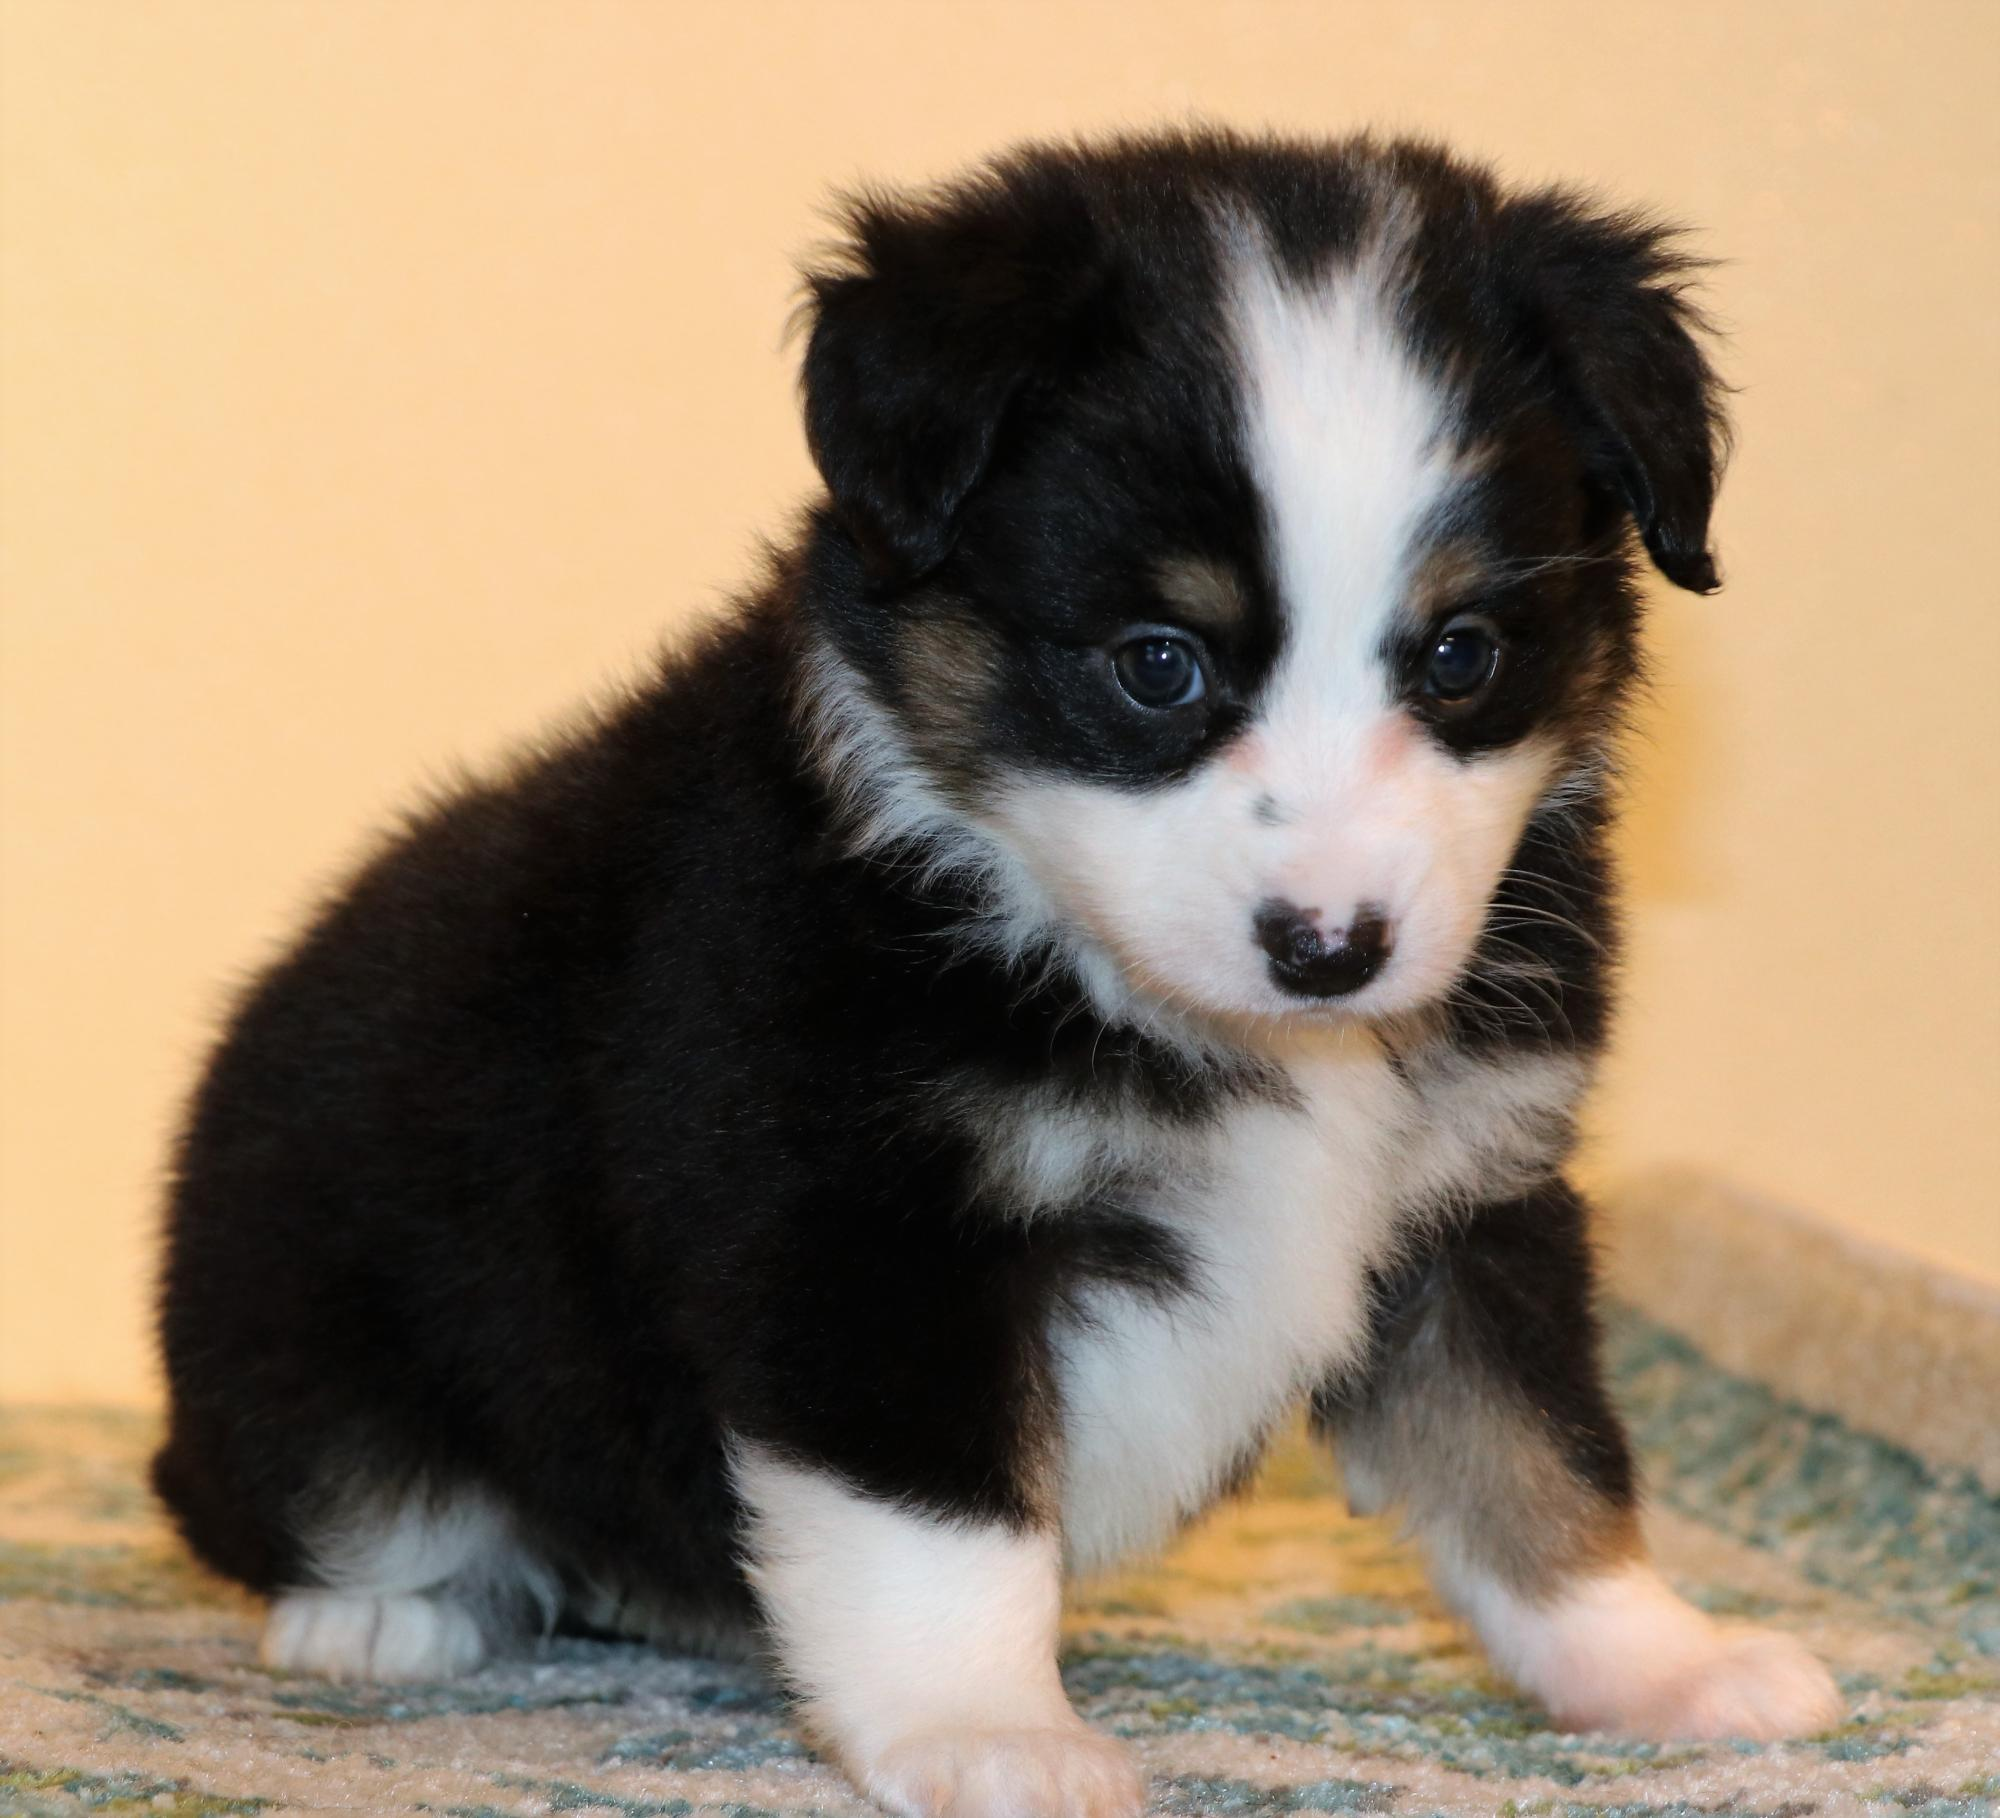 Toy Australian Shepherd puppies for sale in CO, Toy Aussie puppies